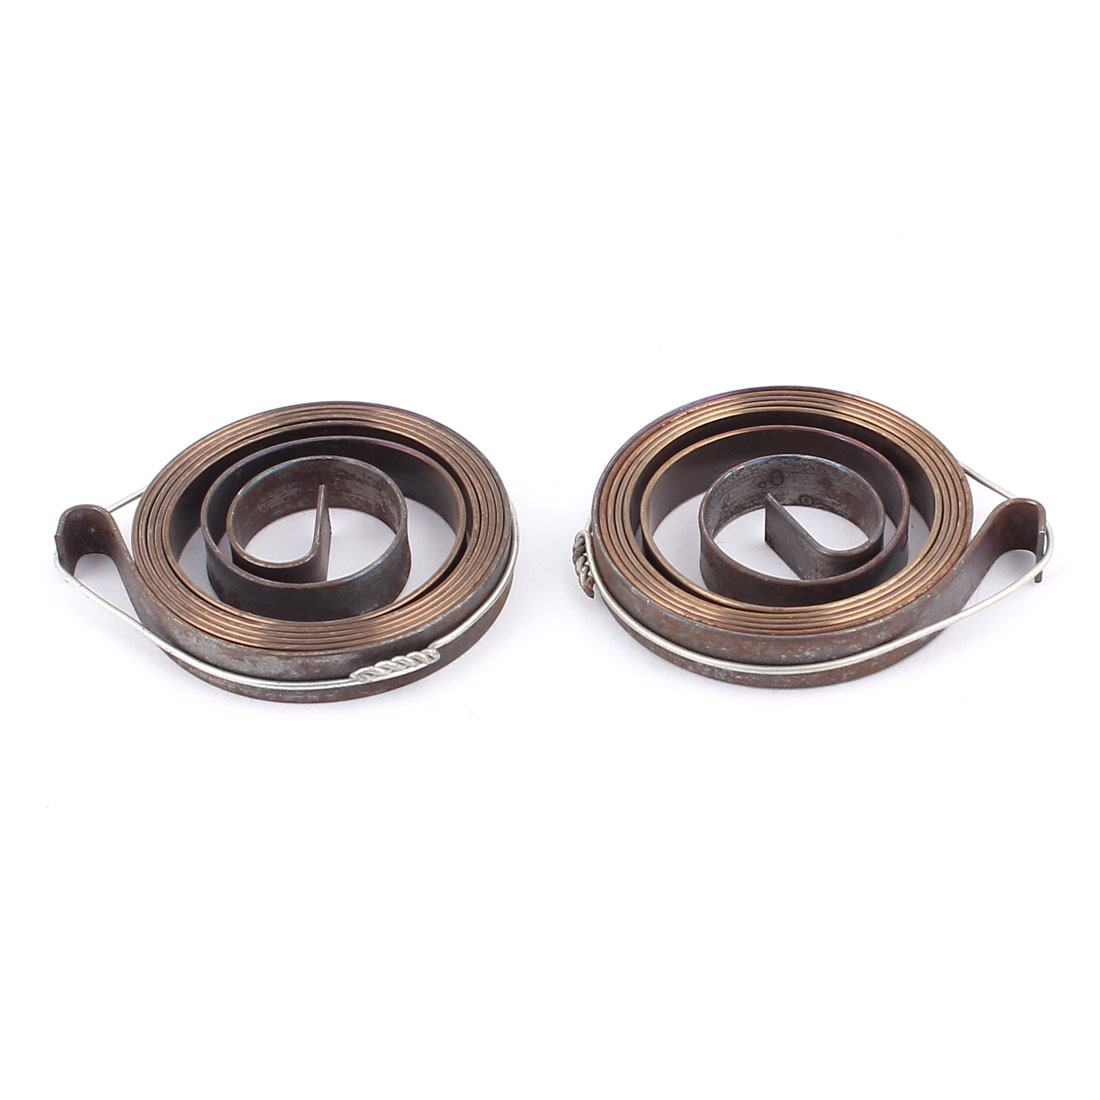 2pcs 34mm x 6mm Drill Press Quill Feed Return Coil Spindle Spring Assembly Tool